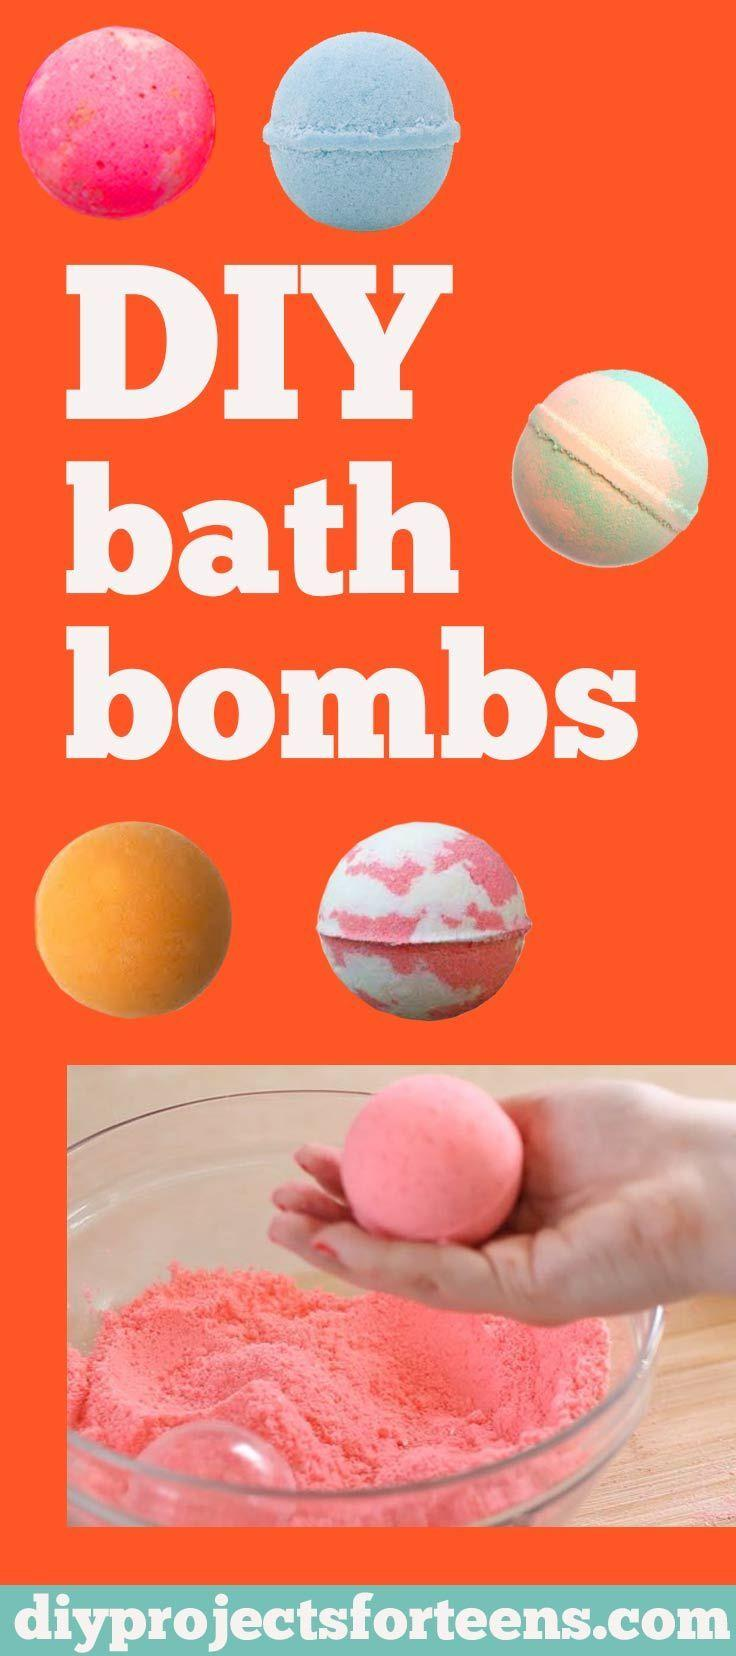 Mariage - How To Make DIY Lush Bath Bombs